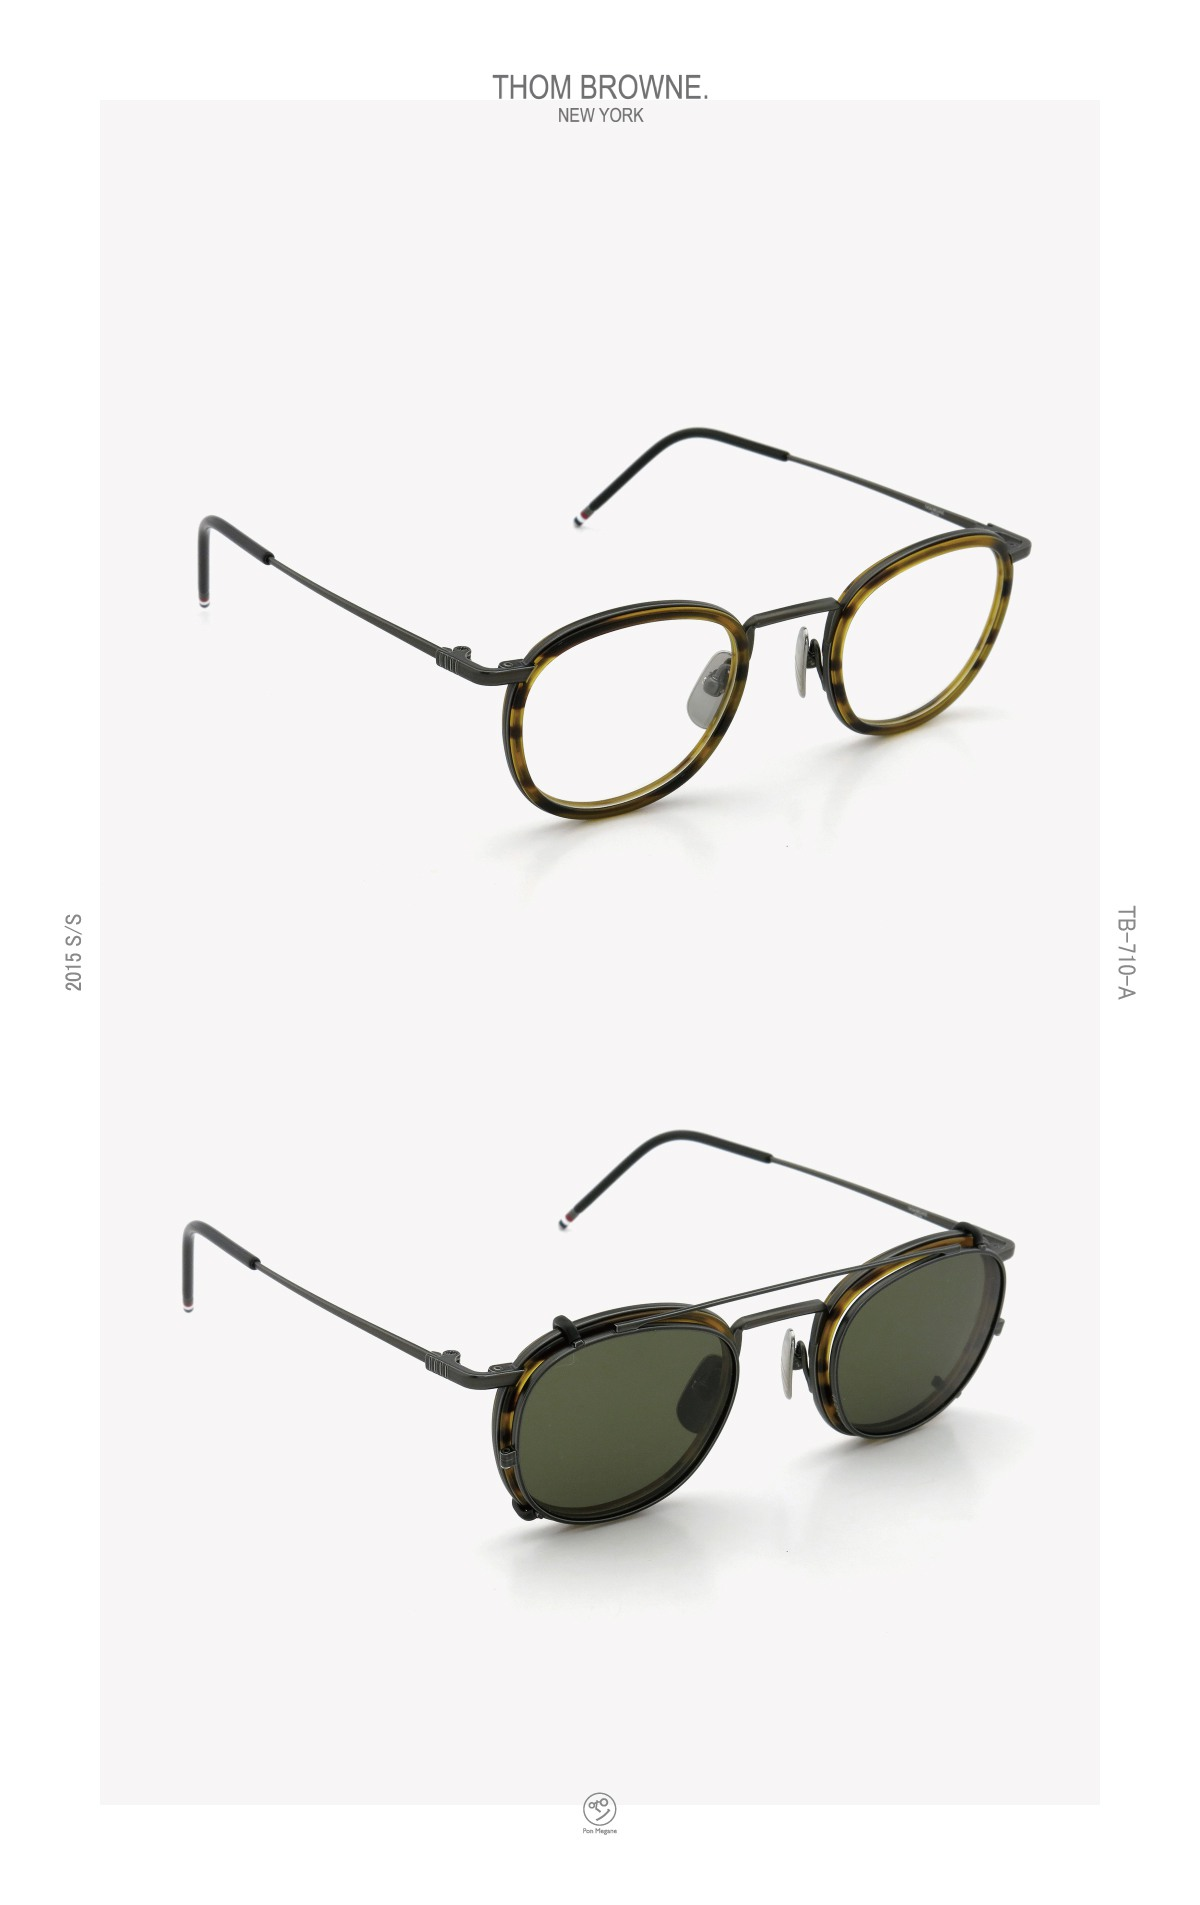 THOM-BROWNE_2015ss_TB-710-A-BLK-WLT_46size_post-ponmegane